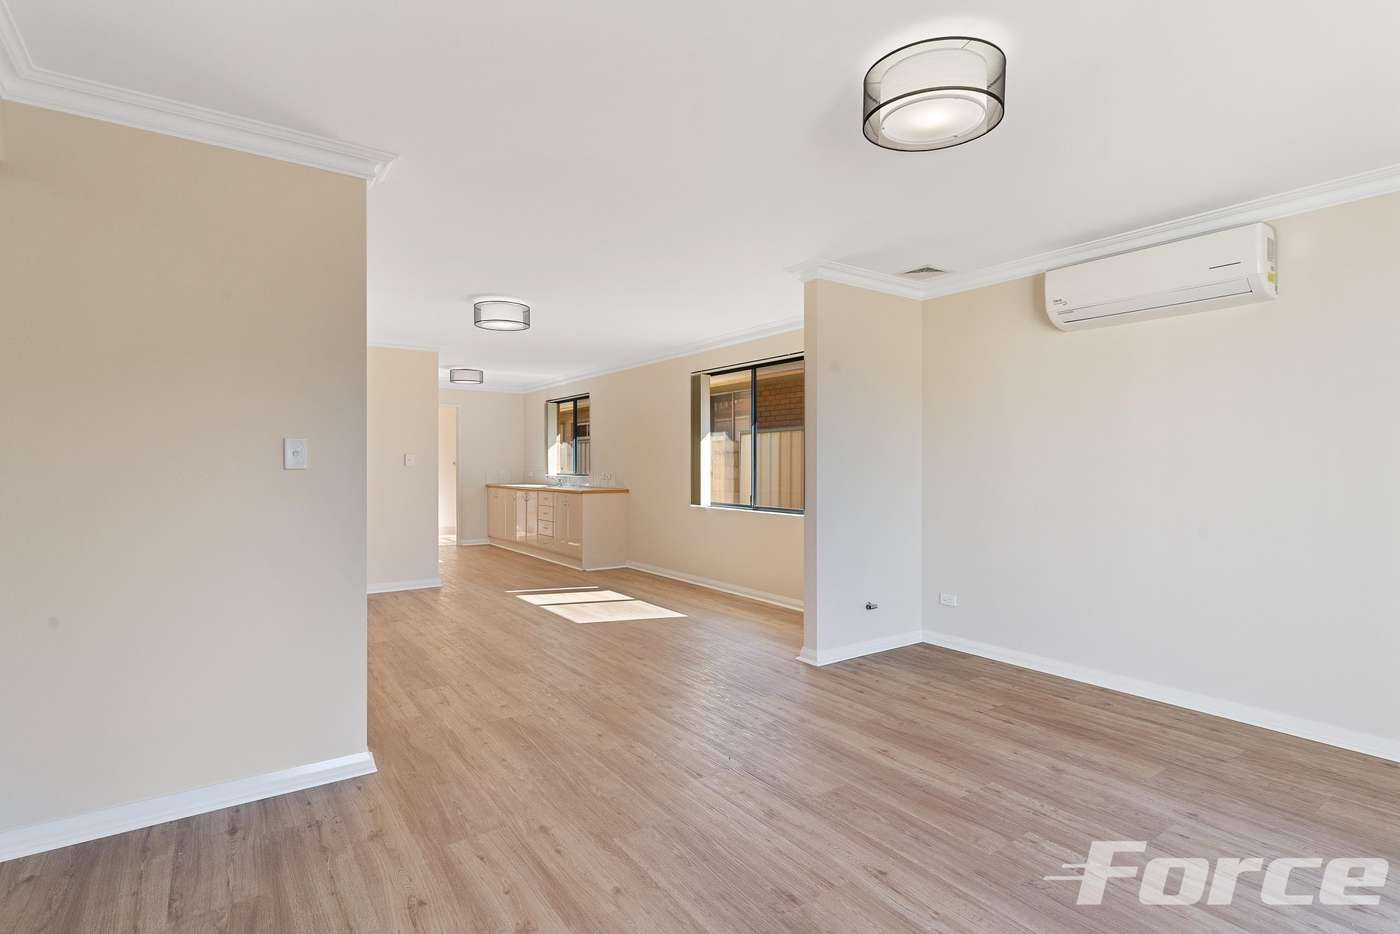 Sixth view of Homely house listing, 6/37 Ravenswood Drive, Nollamara WA 6061